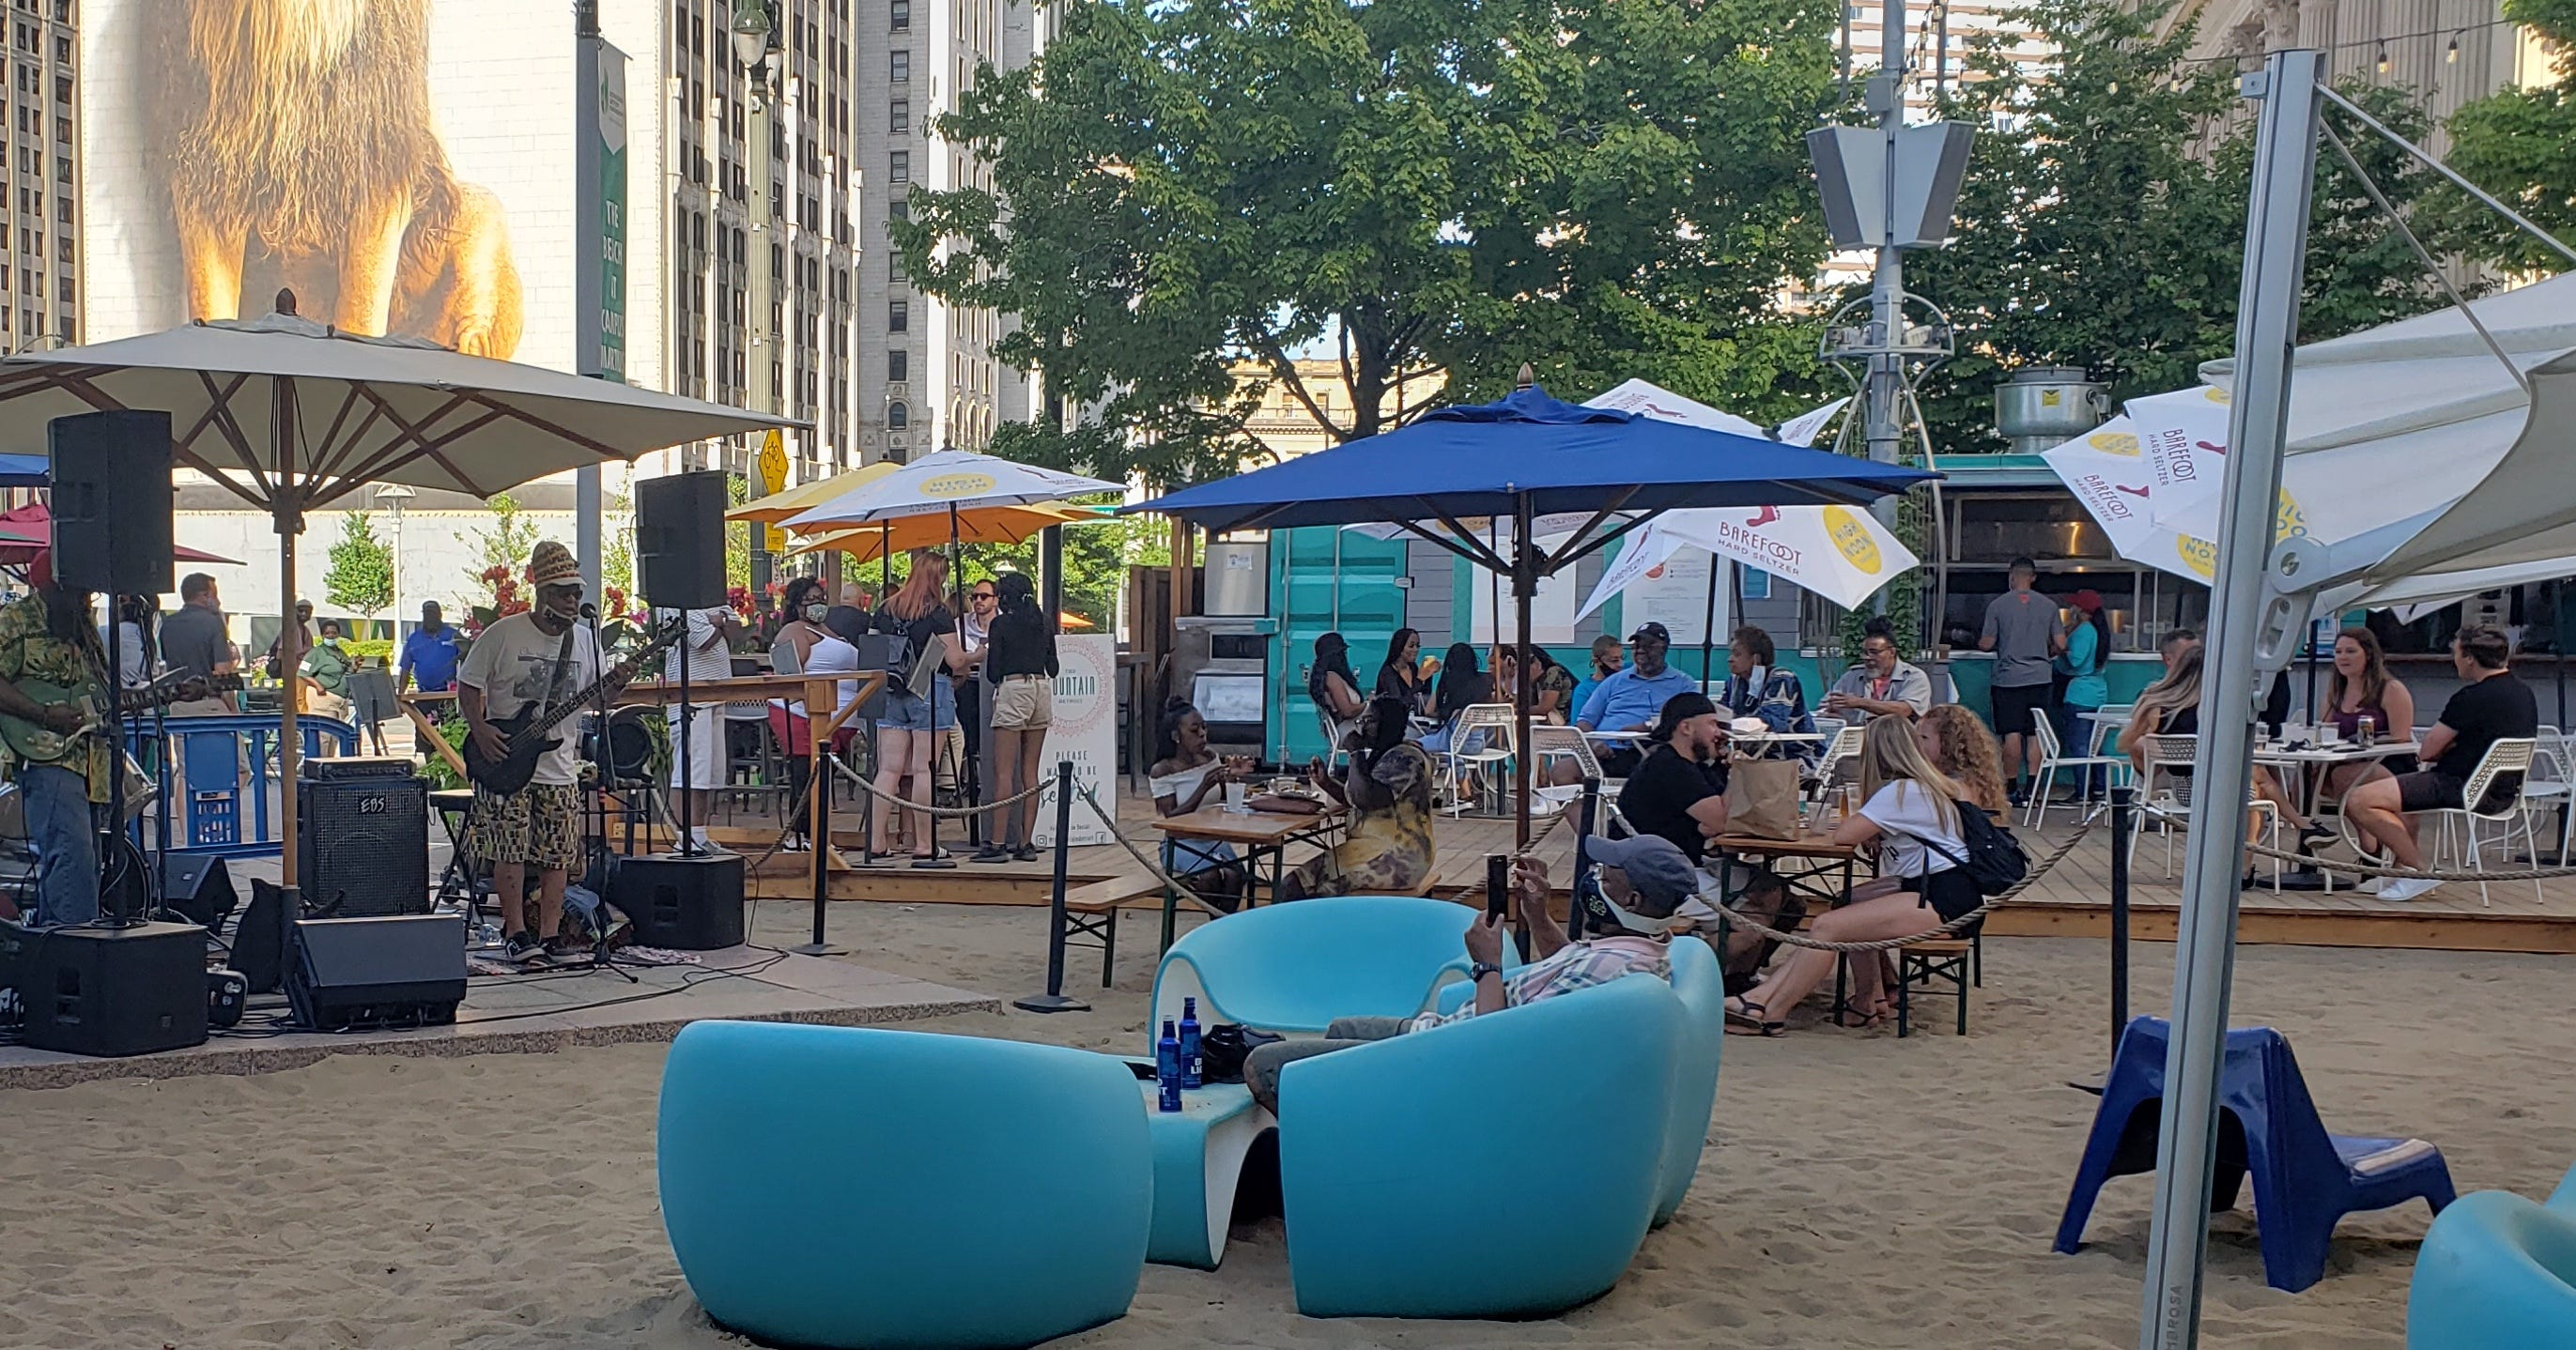 Scaled-down music events to run Fridays at Campus Martius in downtown Detroit